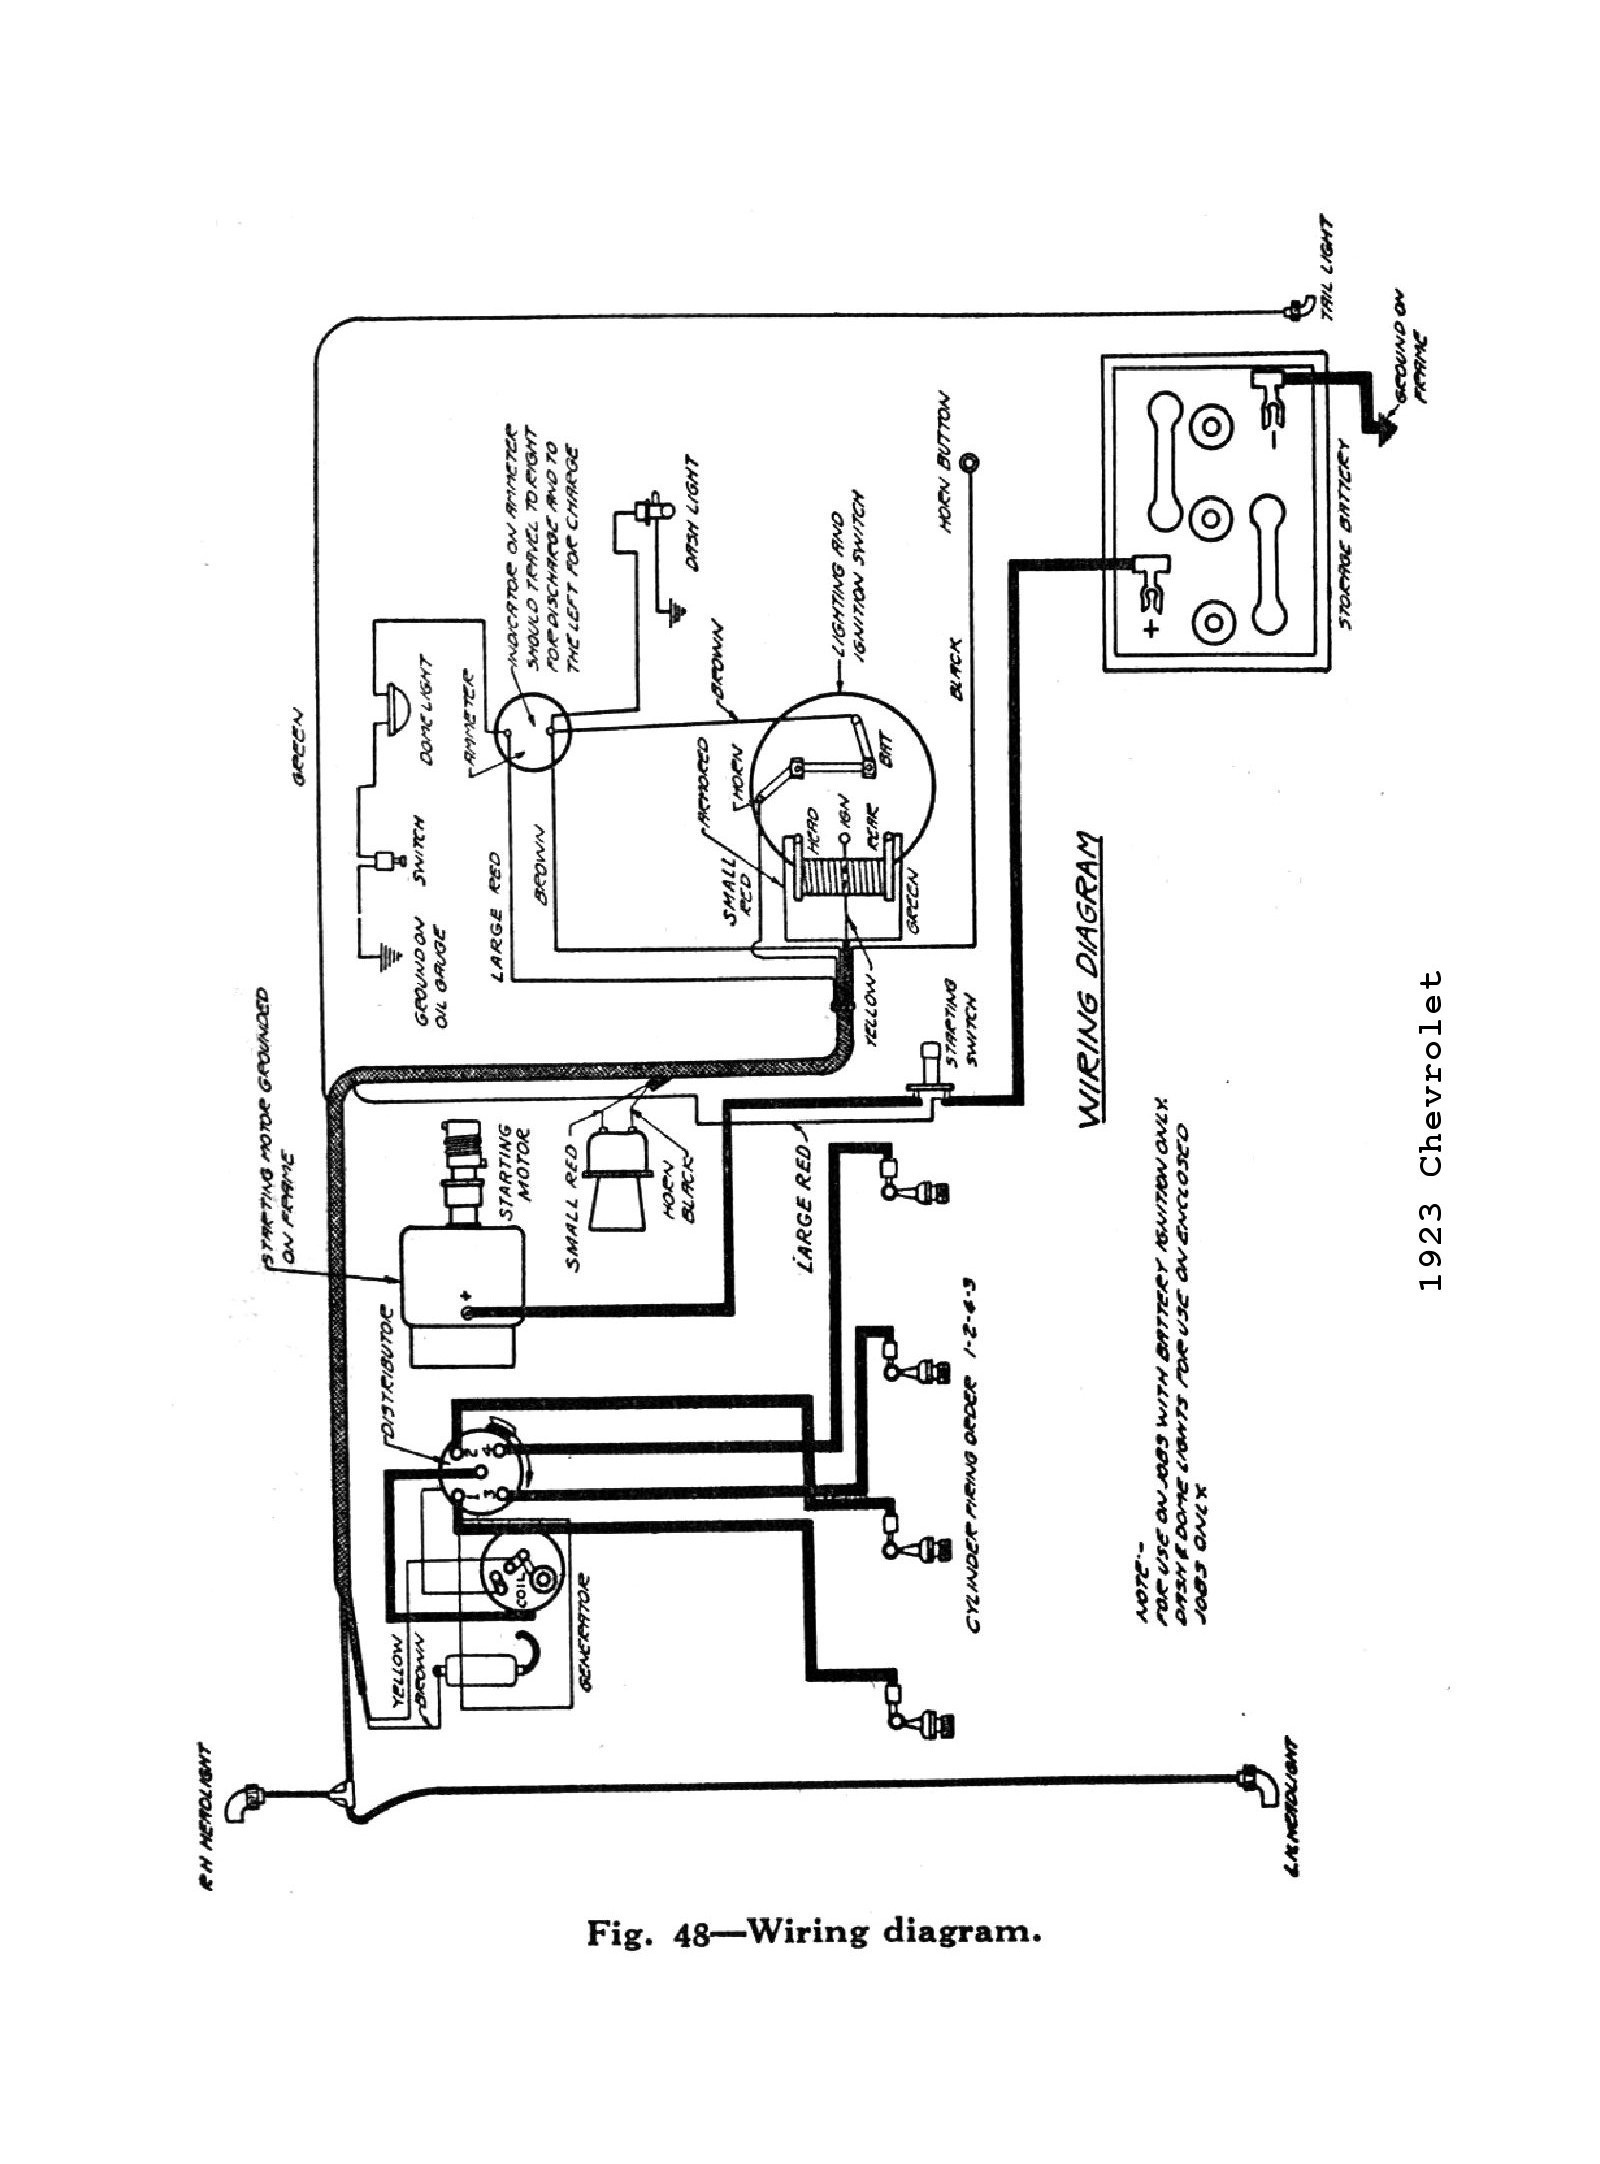 12 Volt Ignition Coil Wiring Diagram